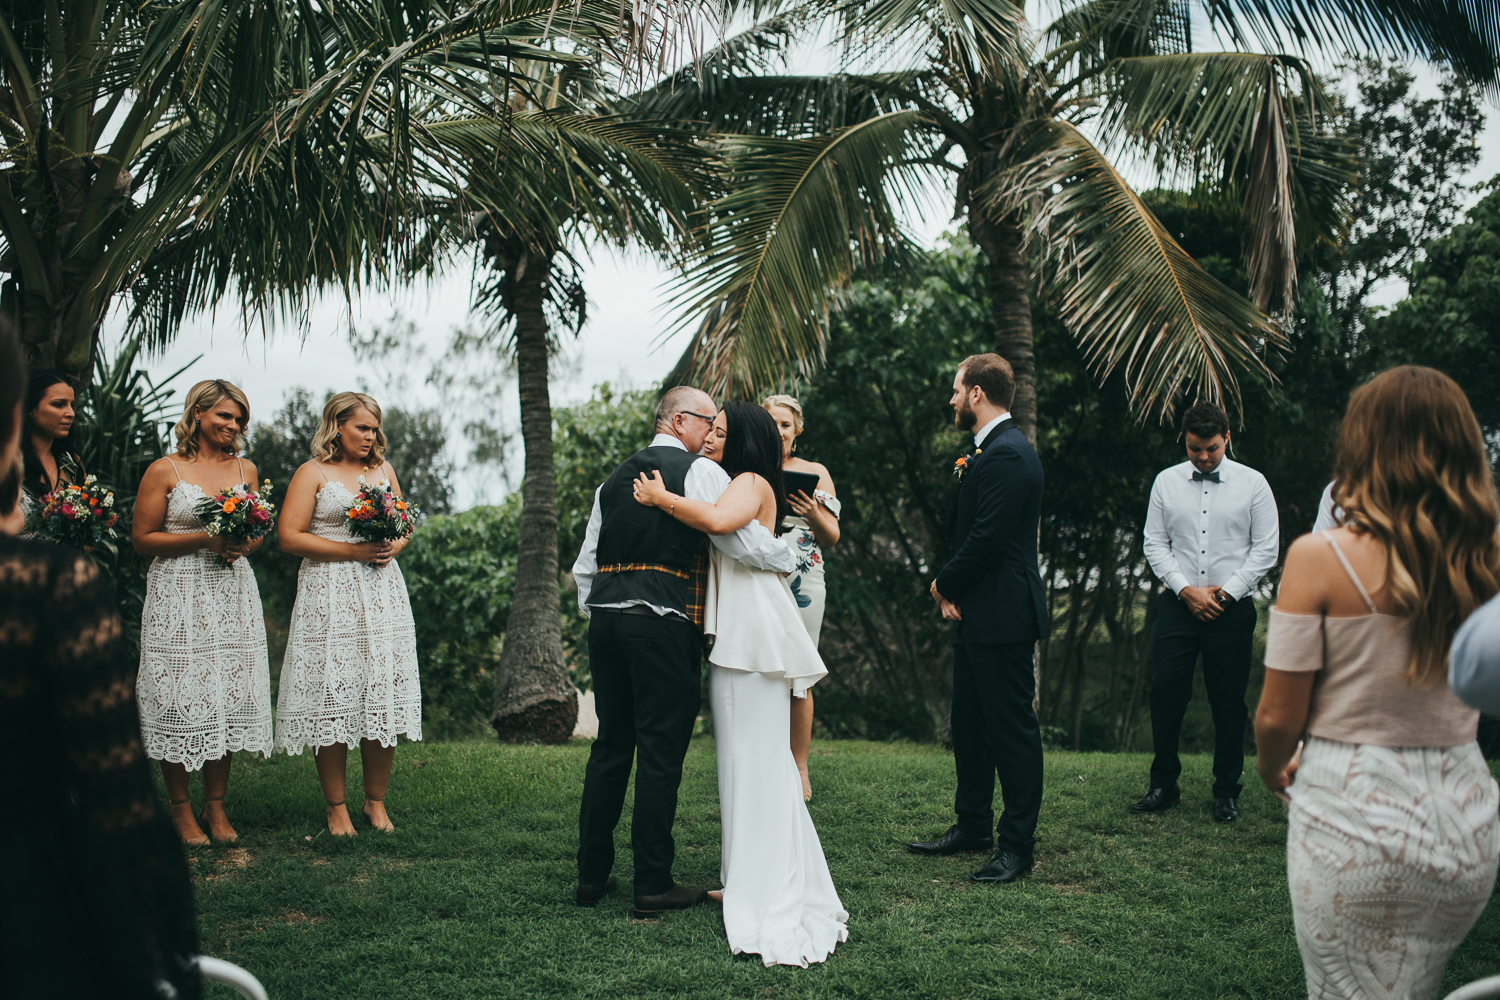 050-halcyon_house_byron_bay_wedding_photographer.jpg